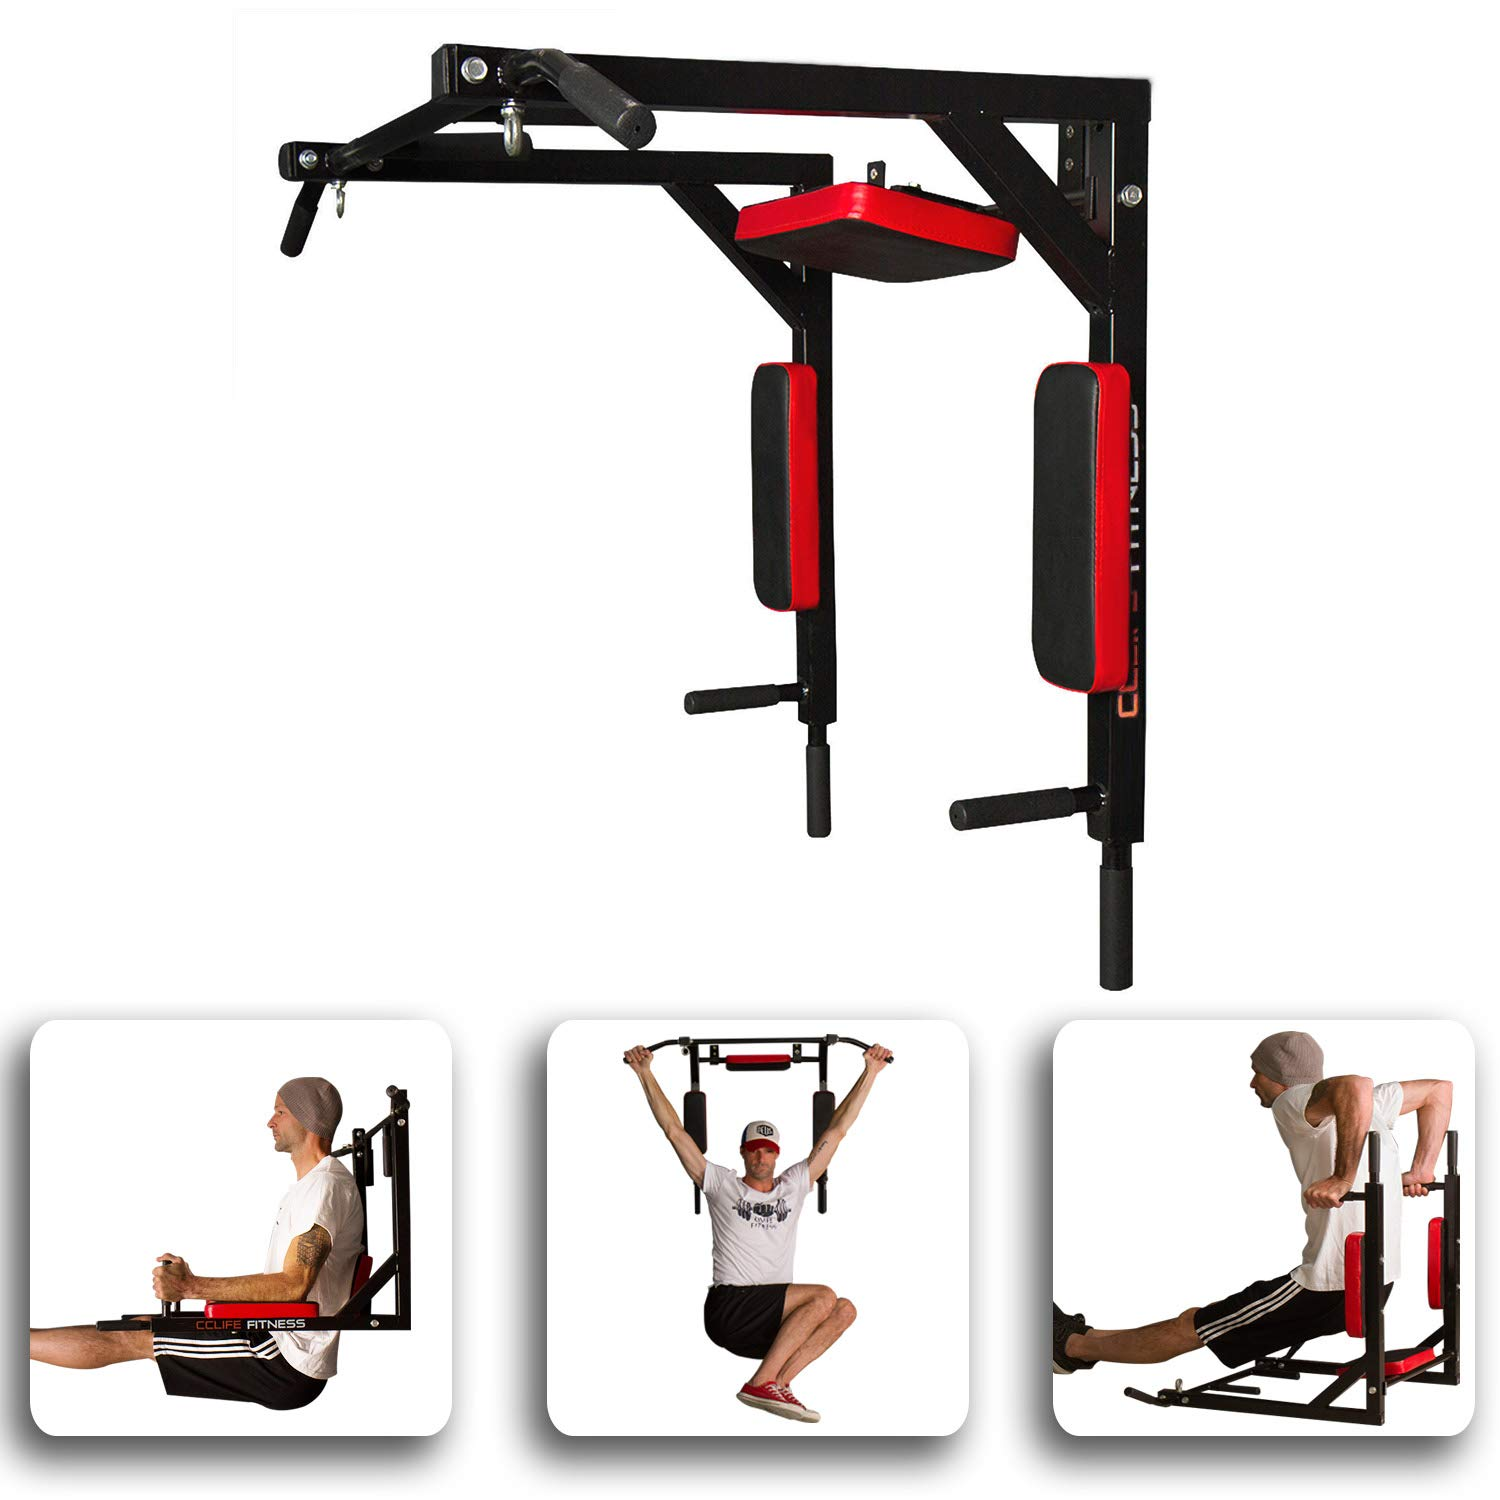 CCLIFE Barre de Traction - Barre de Traction Murale - Chaise Romaine Murale - Barre Traction Barre dips - Barres de Traction Crossfit product image